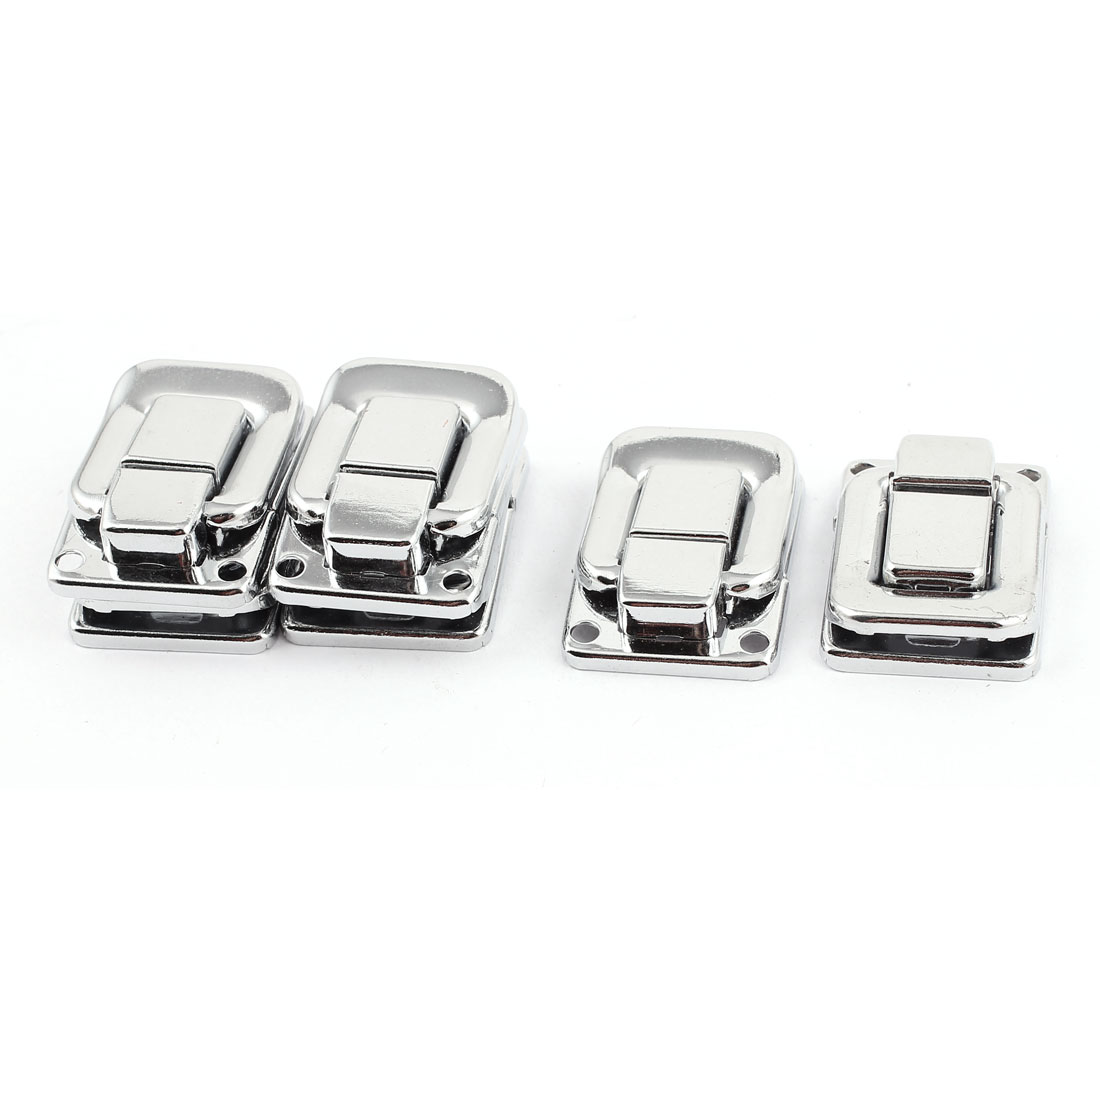 40mm x 27mm Jewelery Box Guitar Case Suitcase Latch Silver Tone 6PCS